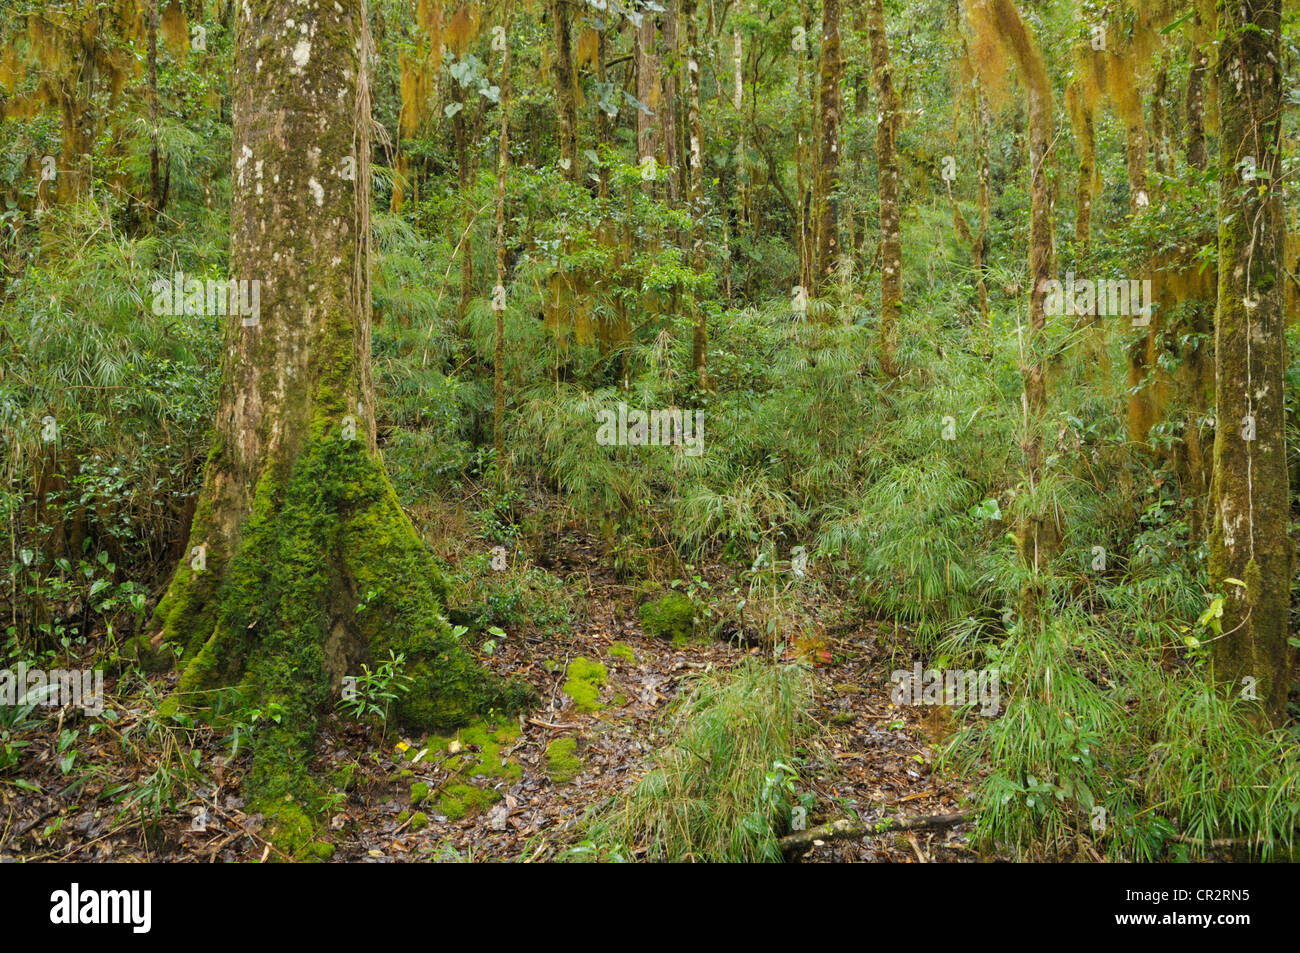 Tropical cloudforest with mosses, lichens and bamboo at 2,000m elevation, Cerro de la Muerte, Costa Rica - Stock Image